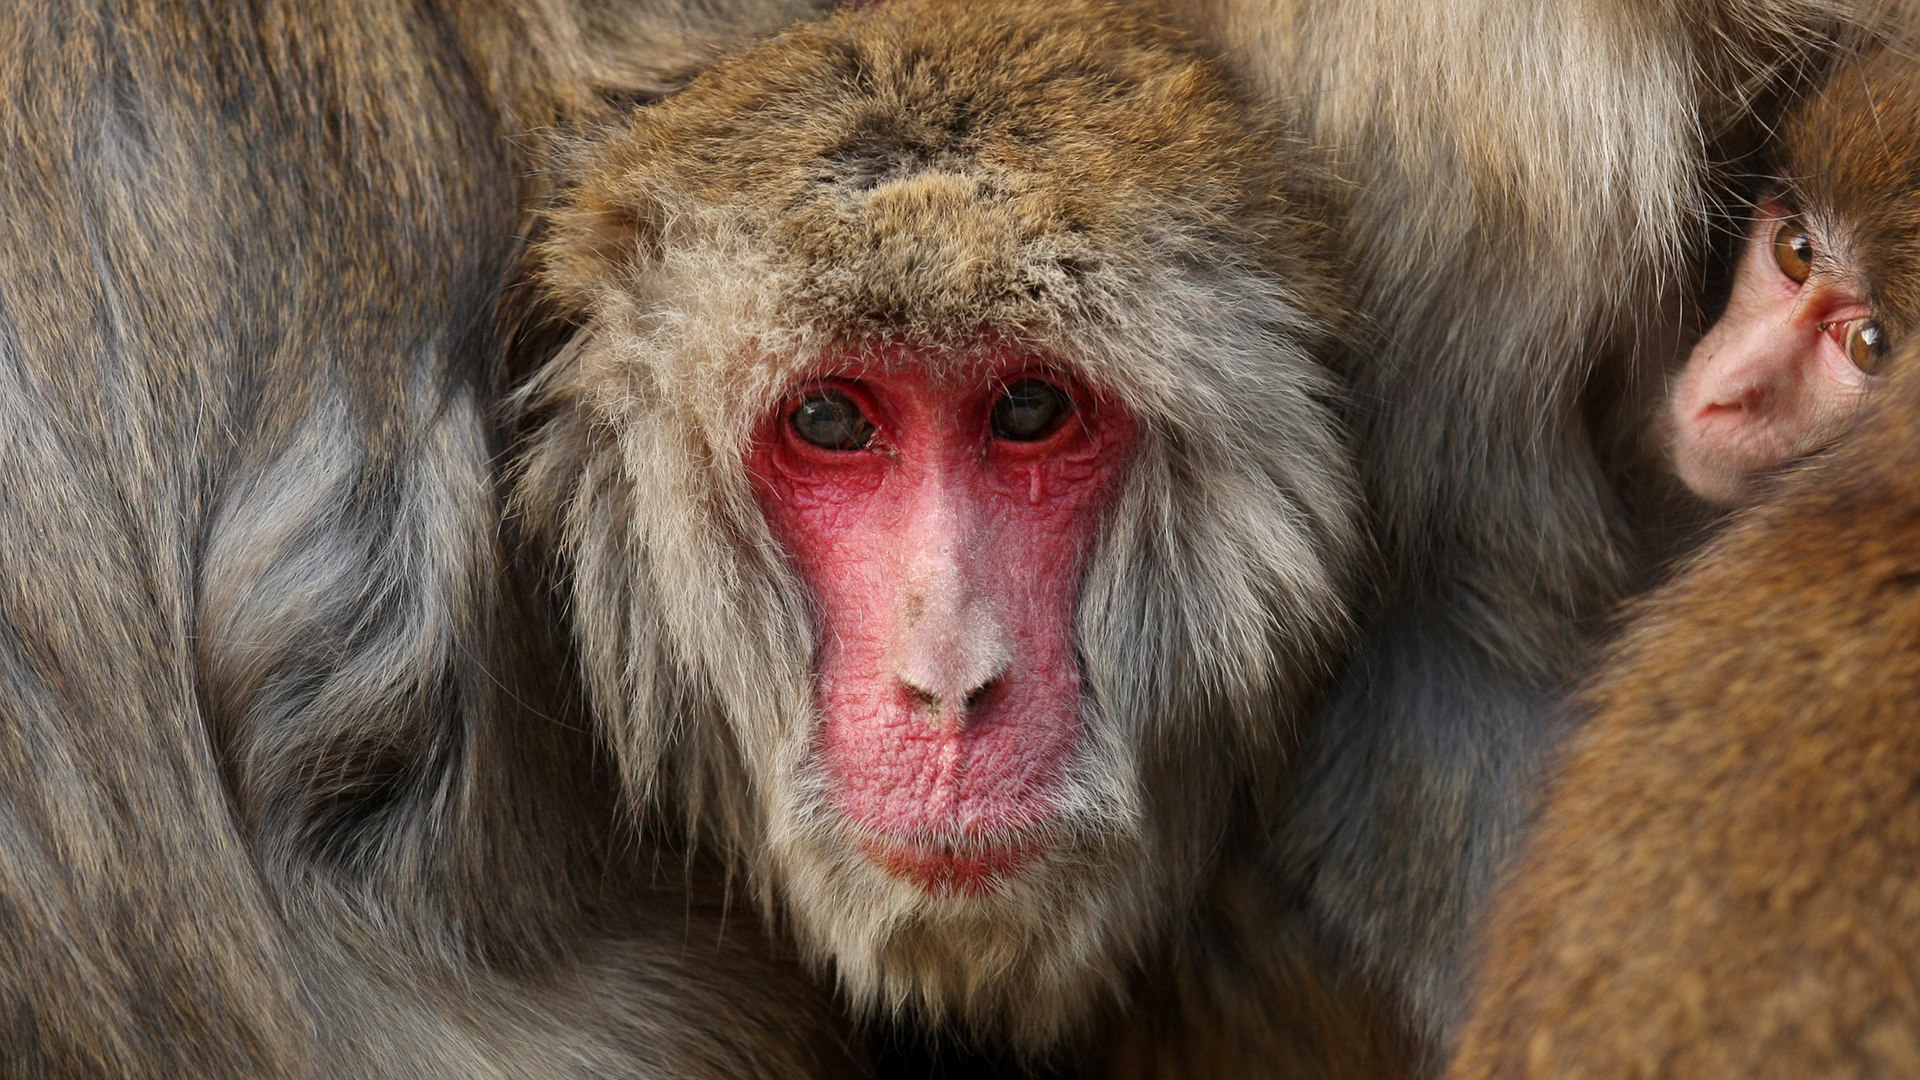 Image: *** BESTPIX *** Japanese Macaques Form Huddle To Keep Warm